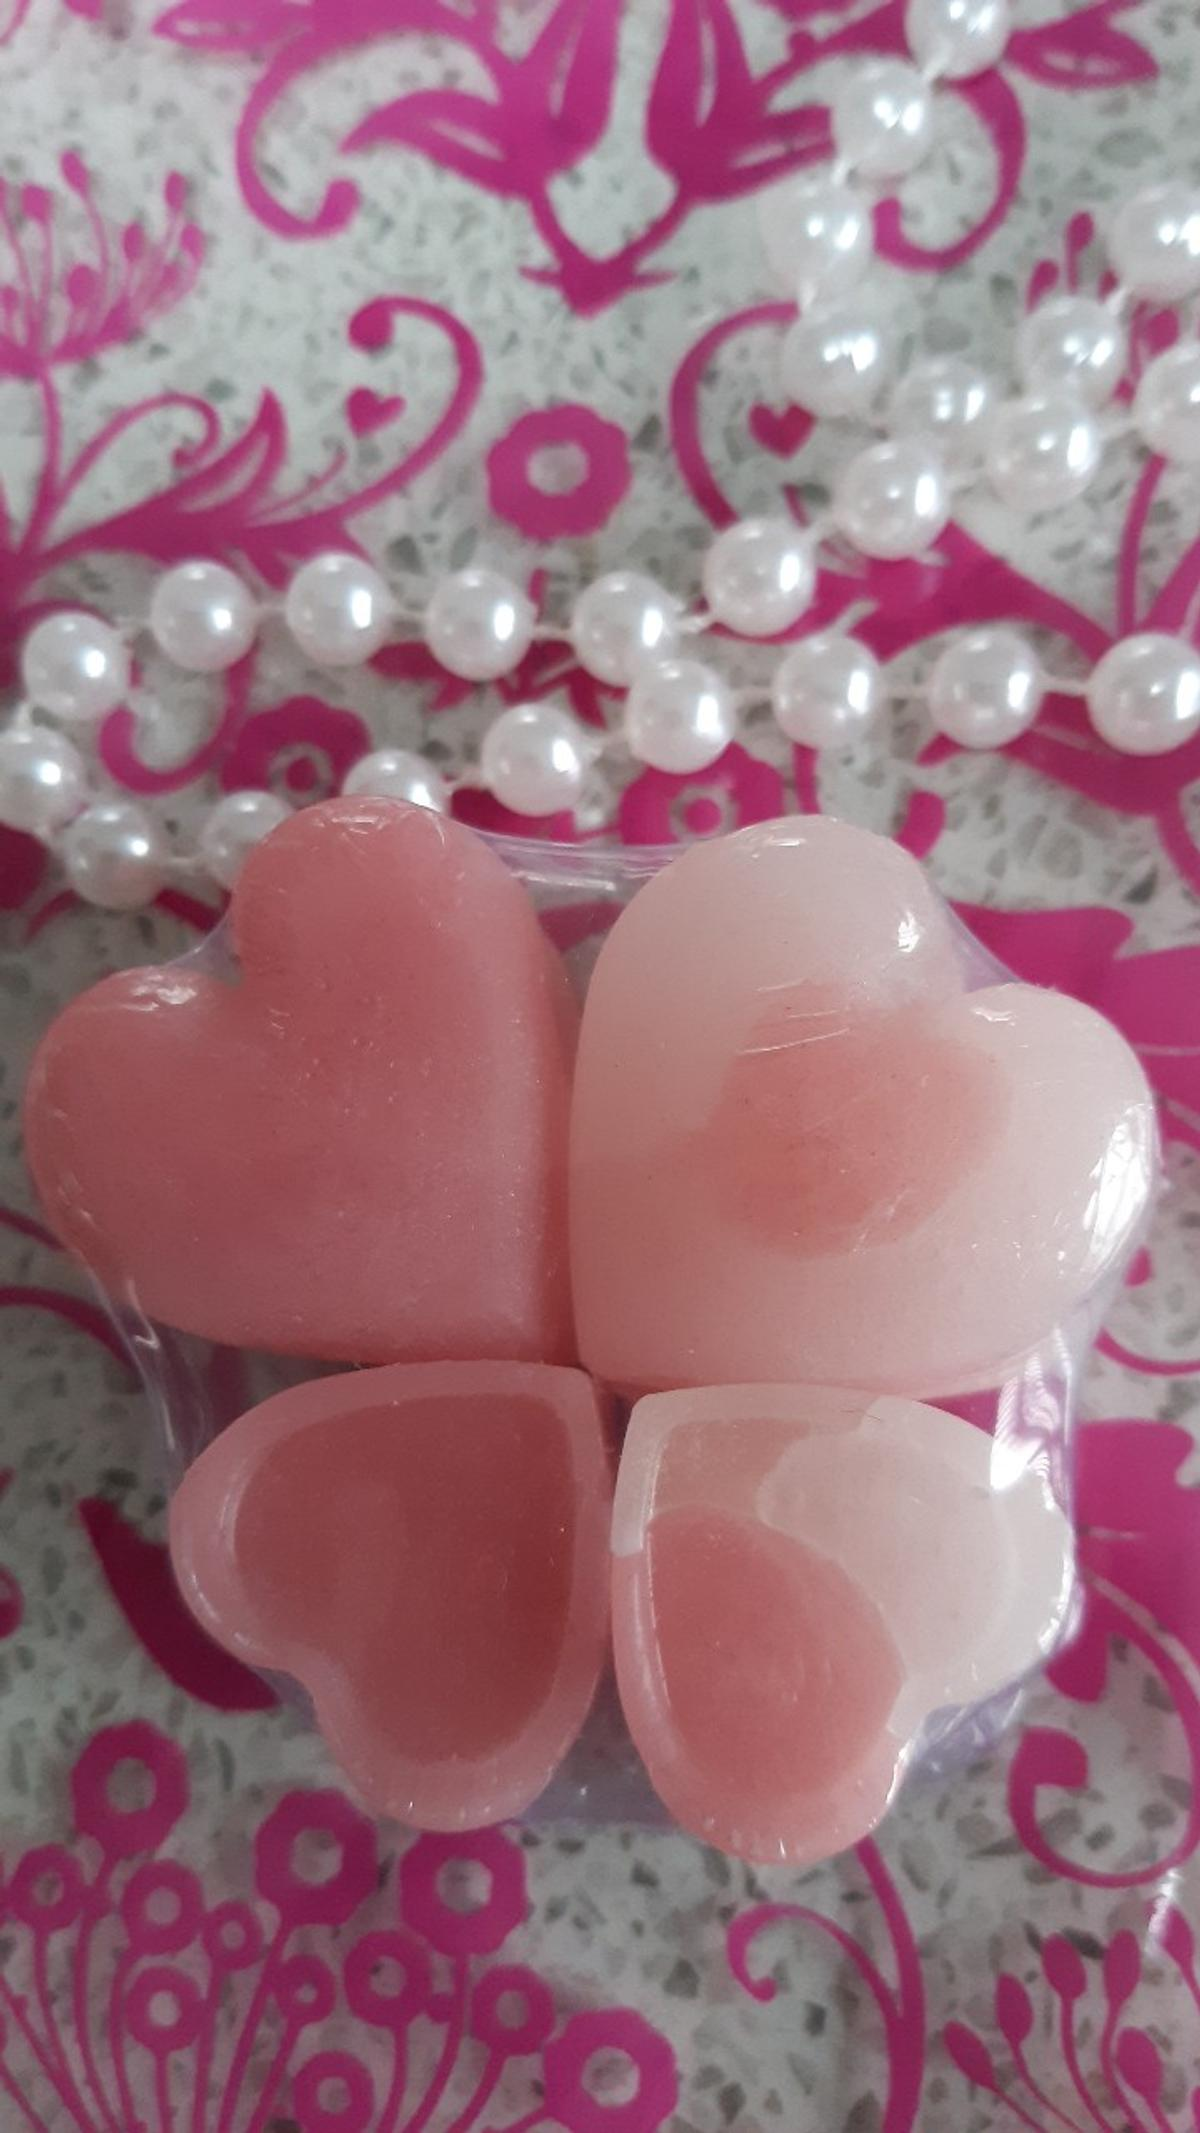 handmade by myself with soy wax which does not contain any toxins like the paraffin based ones, gorgeously fragranced with designer inspired 💗issey miyake💗,these smell delicious 💗they will fill your room with gorgeous scent time after time, would make a lovely little gift for someone special in your life 💗